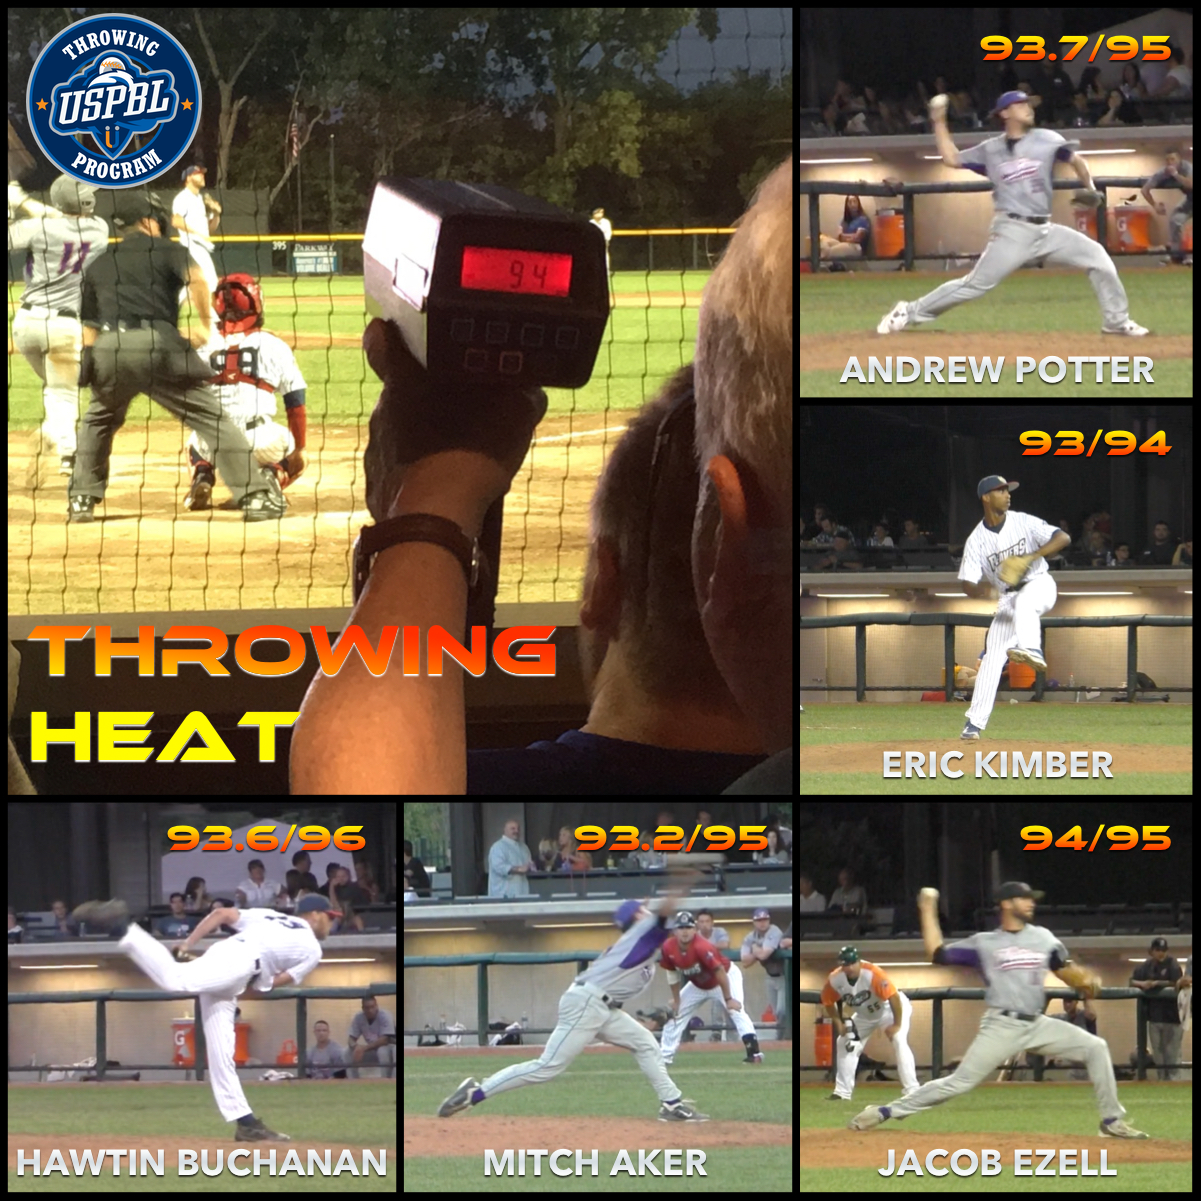 Within a span of four months, a dedicated group of professional pitchers improved their DVS Score average by more than 3 points, and increased their max fastball velocity by an average of 2.46 mph, with certain individuals improving by as much as 4 mph. Additionally, they improved throwing-arm flexibility by an average of 6.5º,and all pitchers significantly reduced their chances of sustaining a throwing-related injury based on their shoulder range-of-motion patterns.